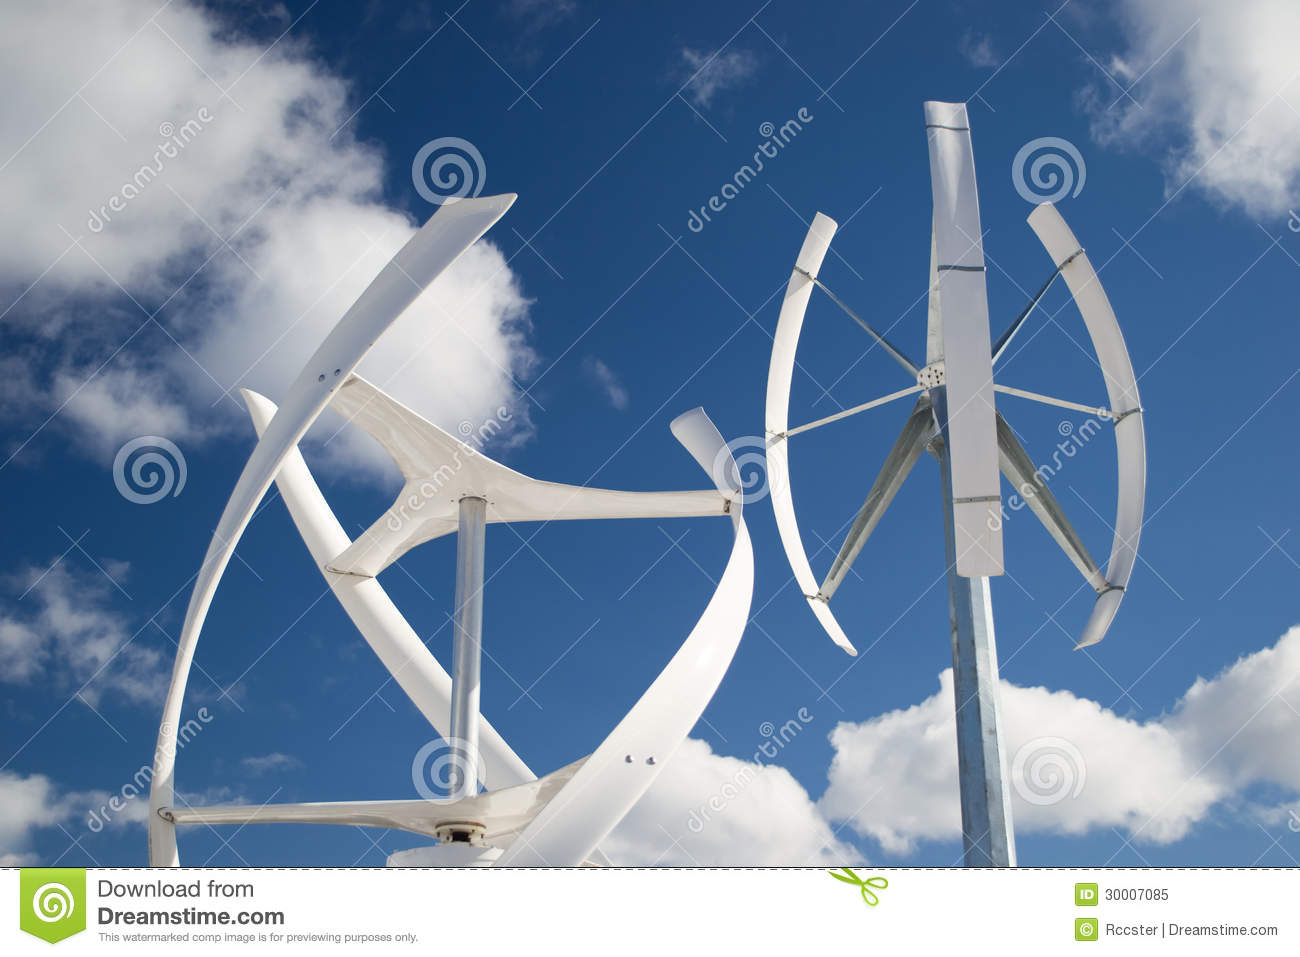 ... of windmill turbines generating wind power. A renewable energy source